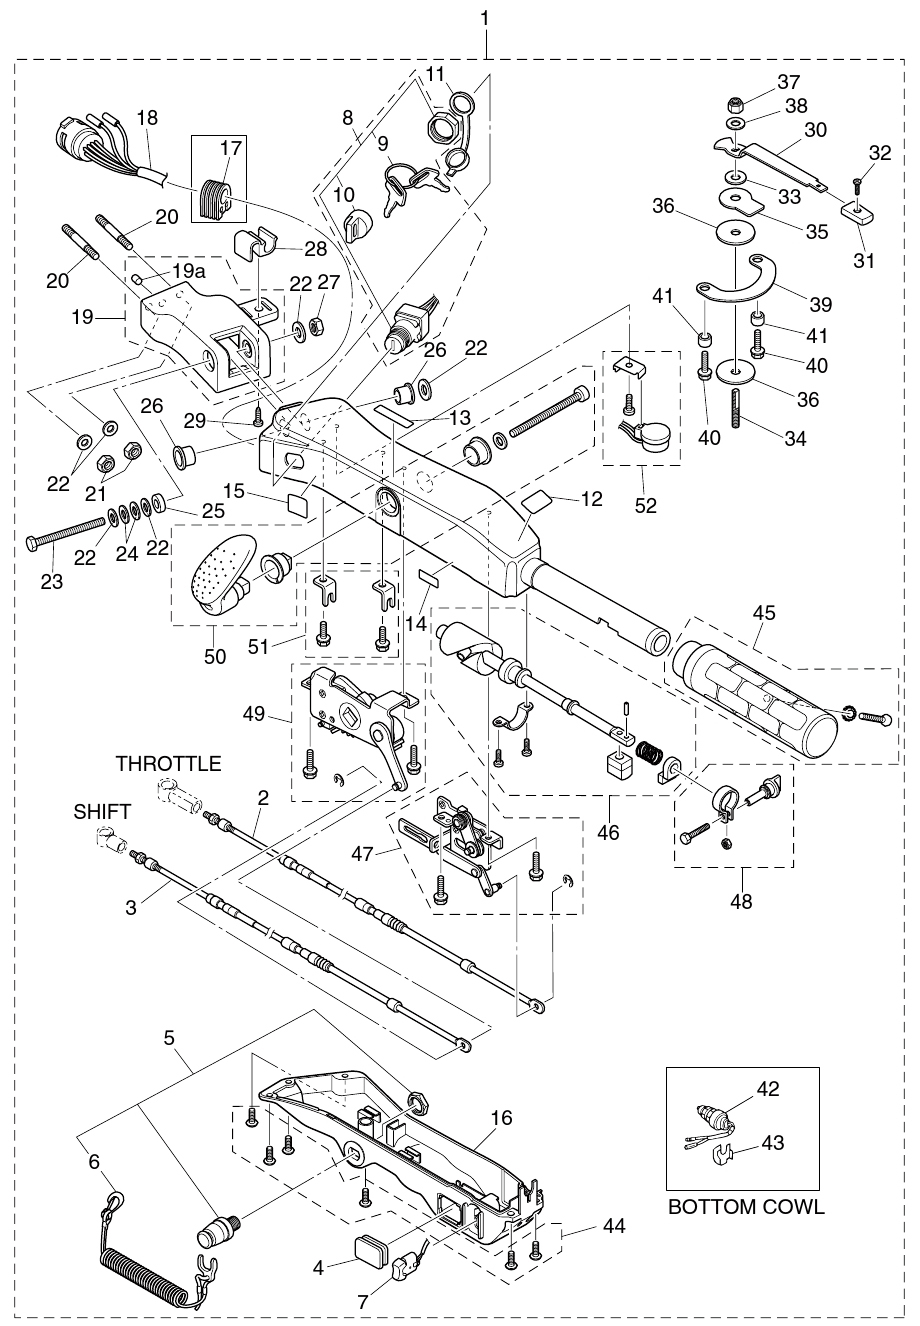 22. TILLER HANDLE (MULTI-FUNCTION) : , Reliable Source of